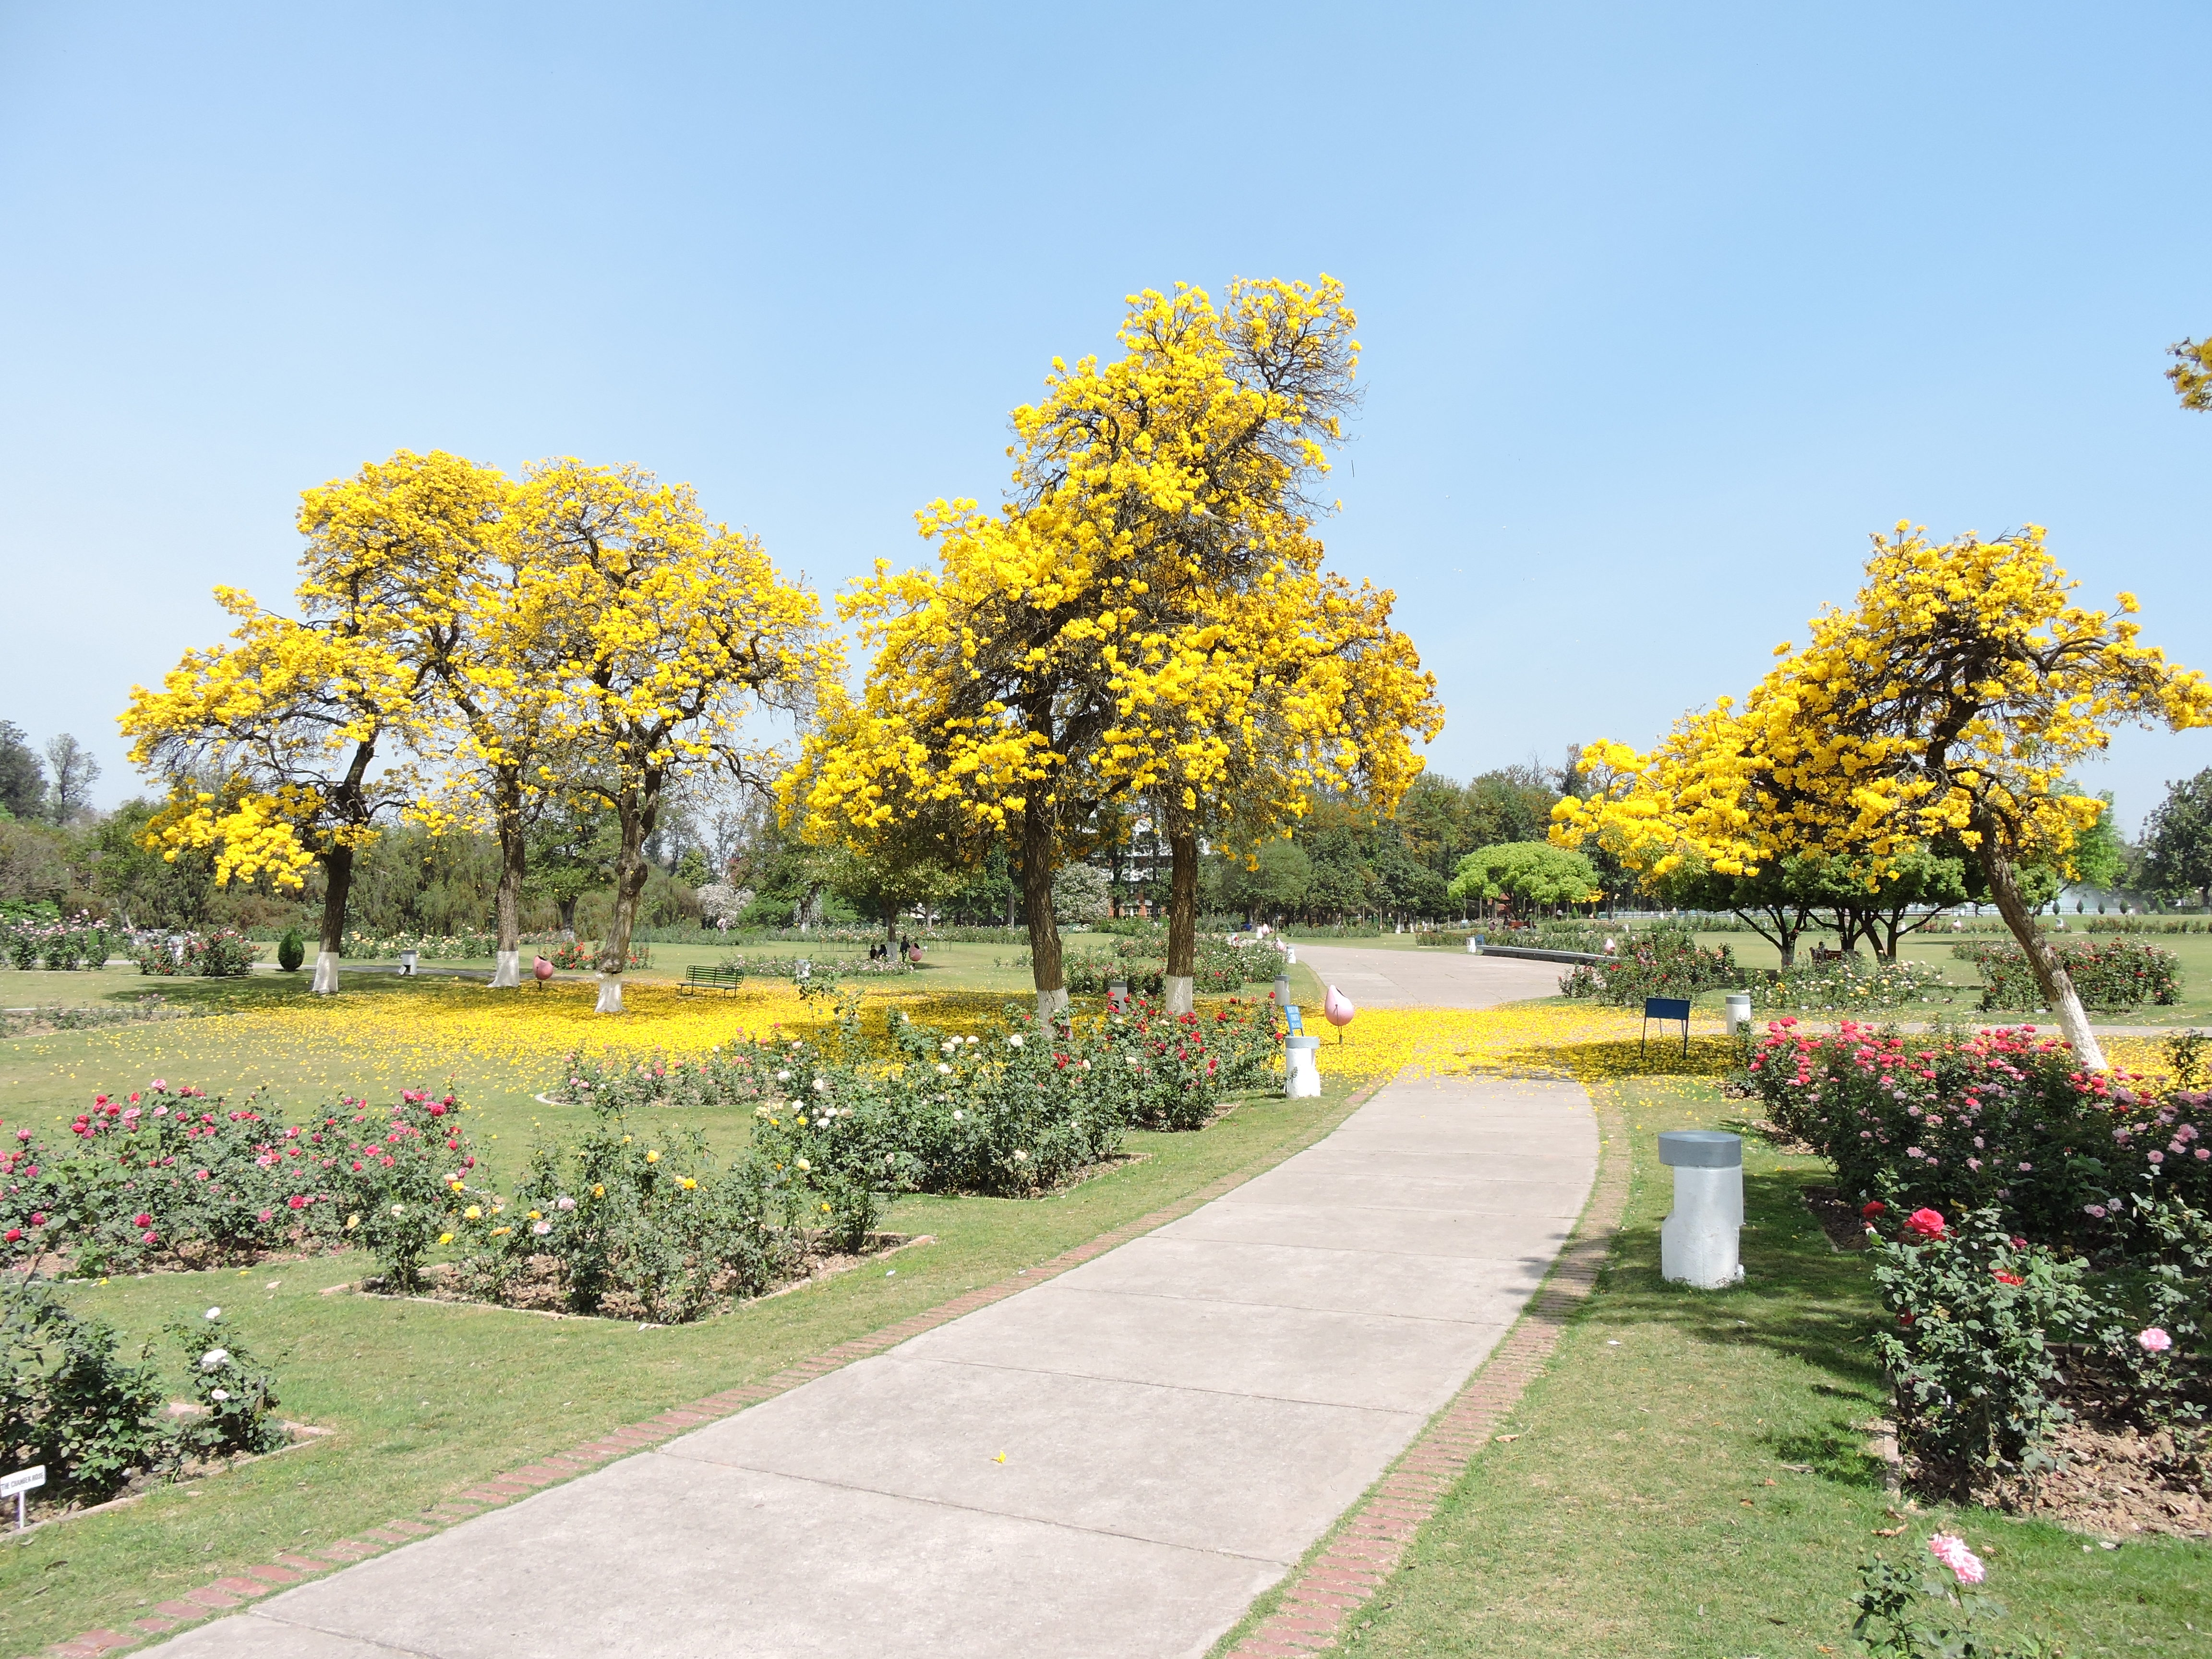 Garden City Chandigarh: 15 Best Places To Explore, Things To Do, Night Life... 3